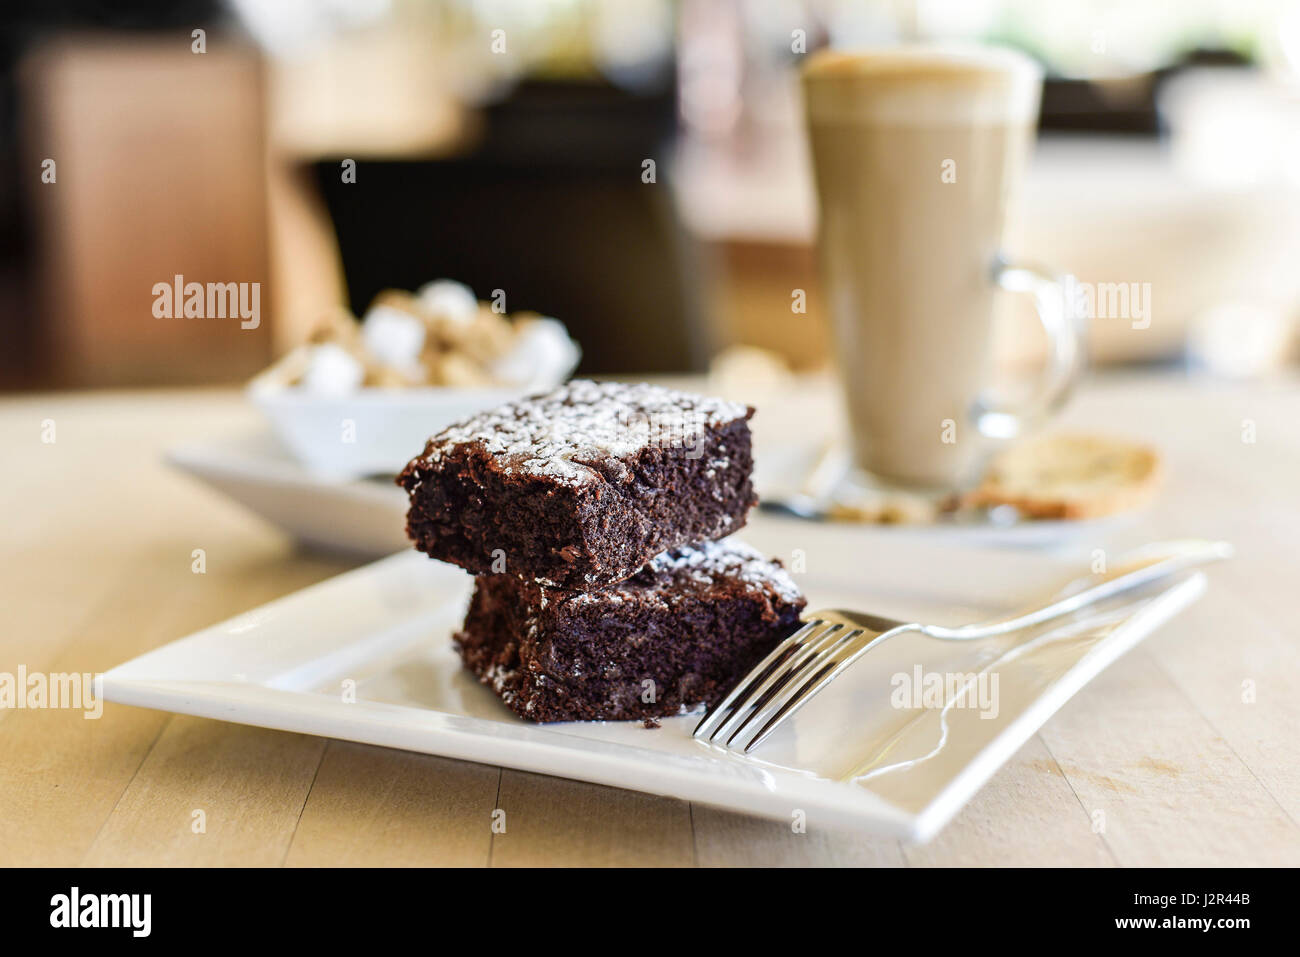 Food Two Chocolate Brownies Dessert Pudding Sweet Treat Chocolate brownies Baked Baking Fork Plate - Stock Image